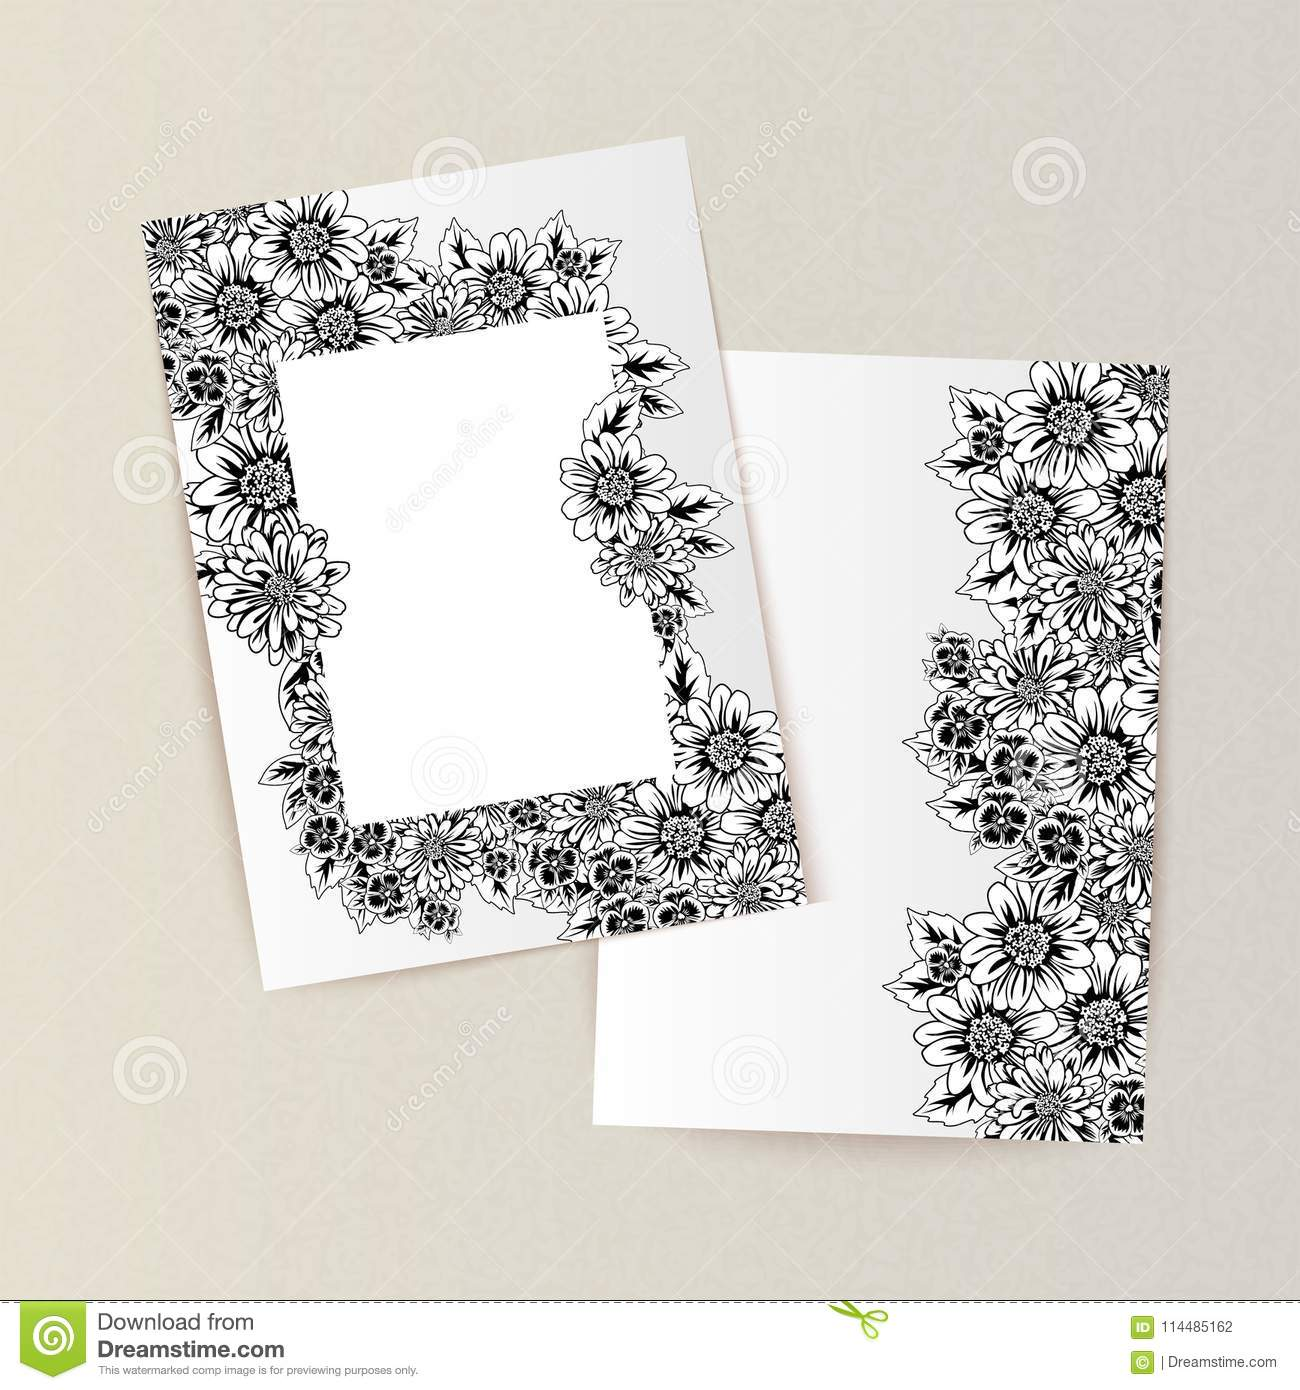 Greeting card with flowers stock vector illustration of gift download greeting card with flowers stock vector illustration of gift 114485162 m4hsunfo